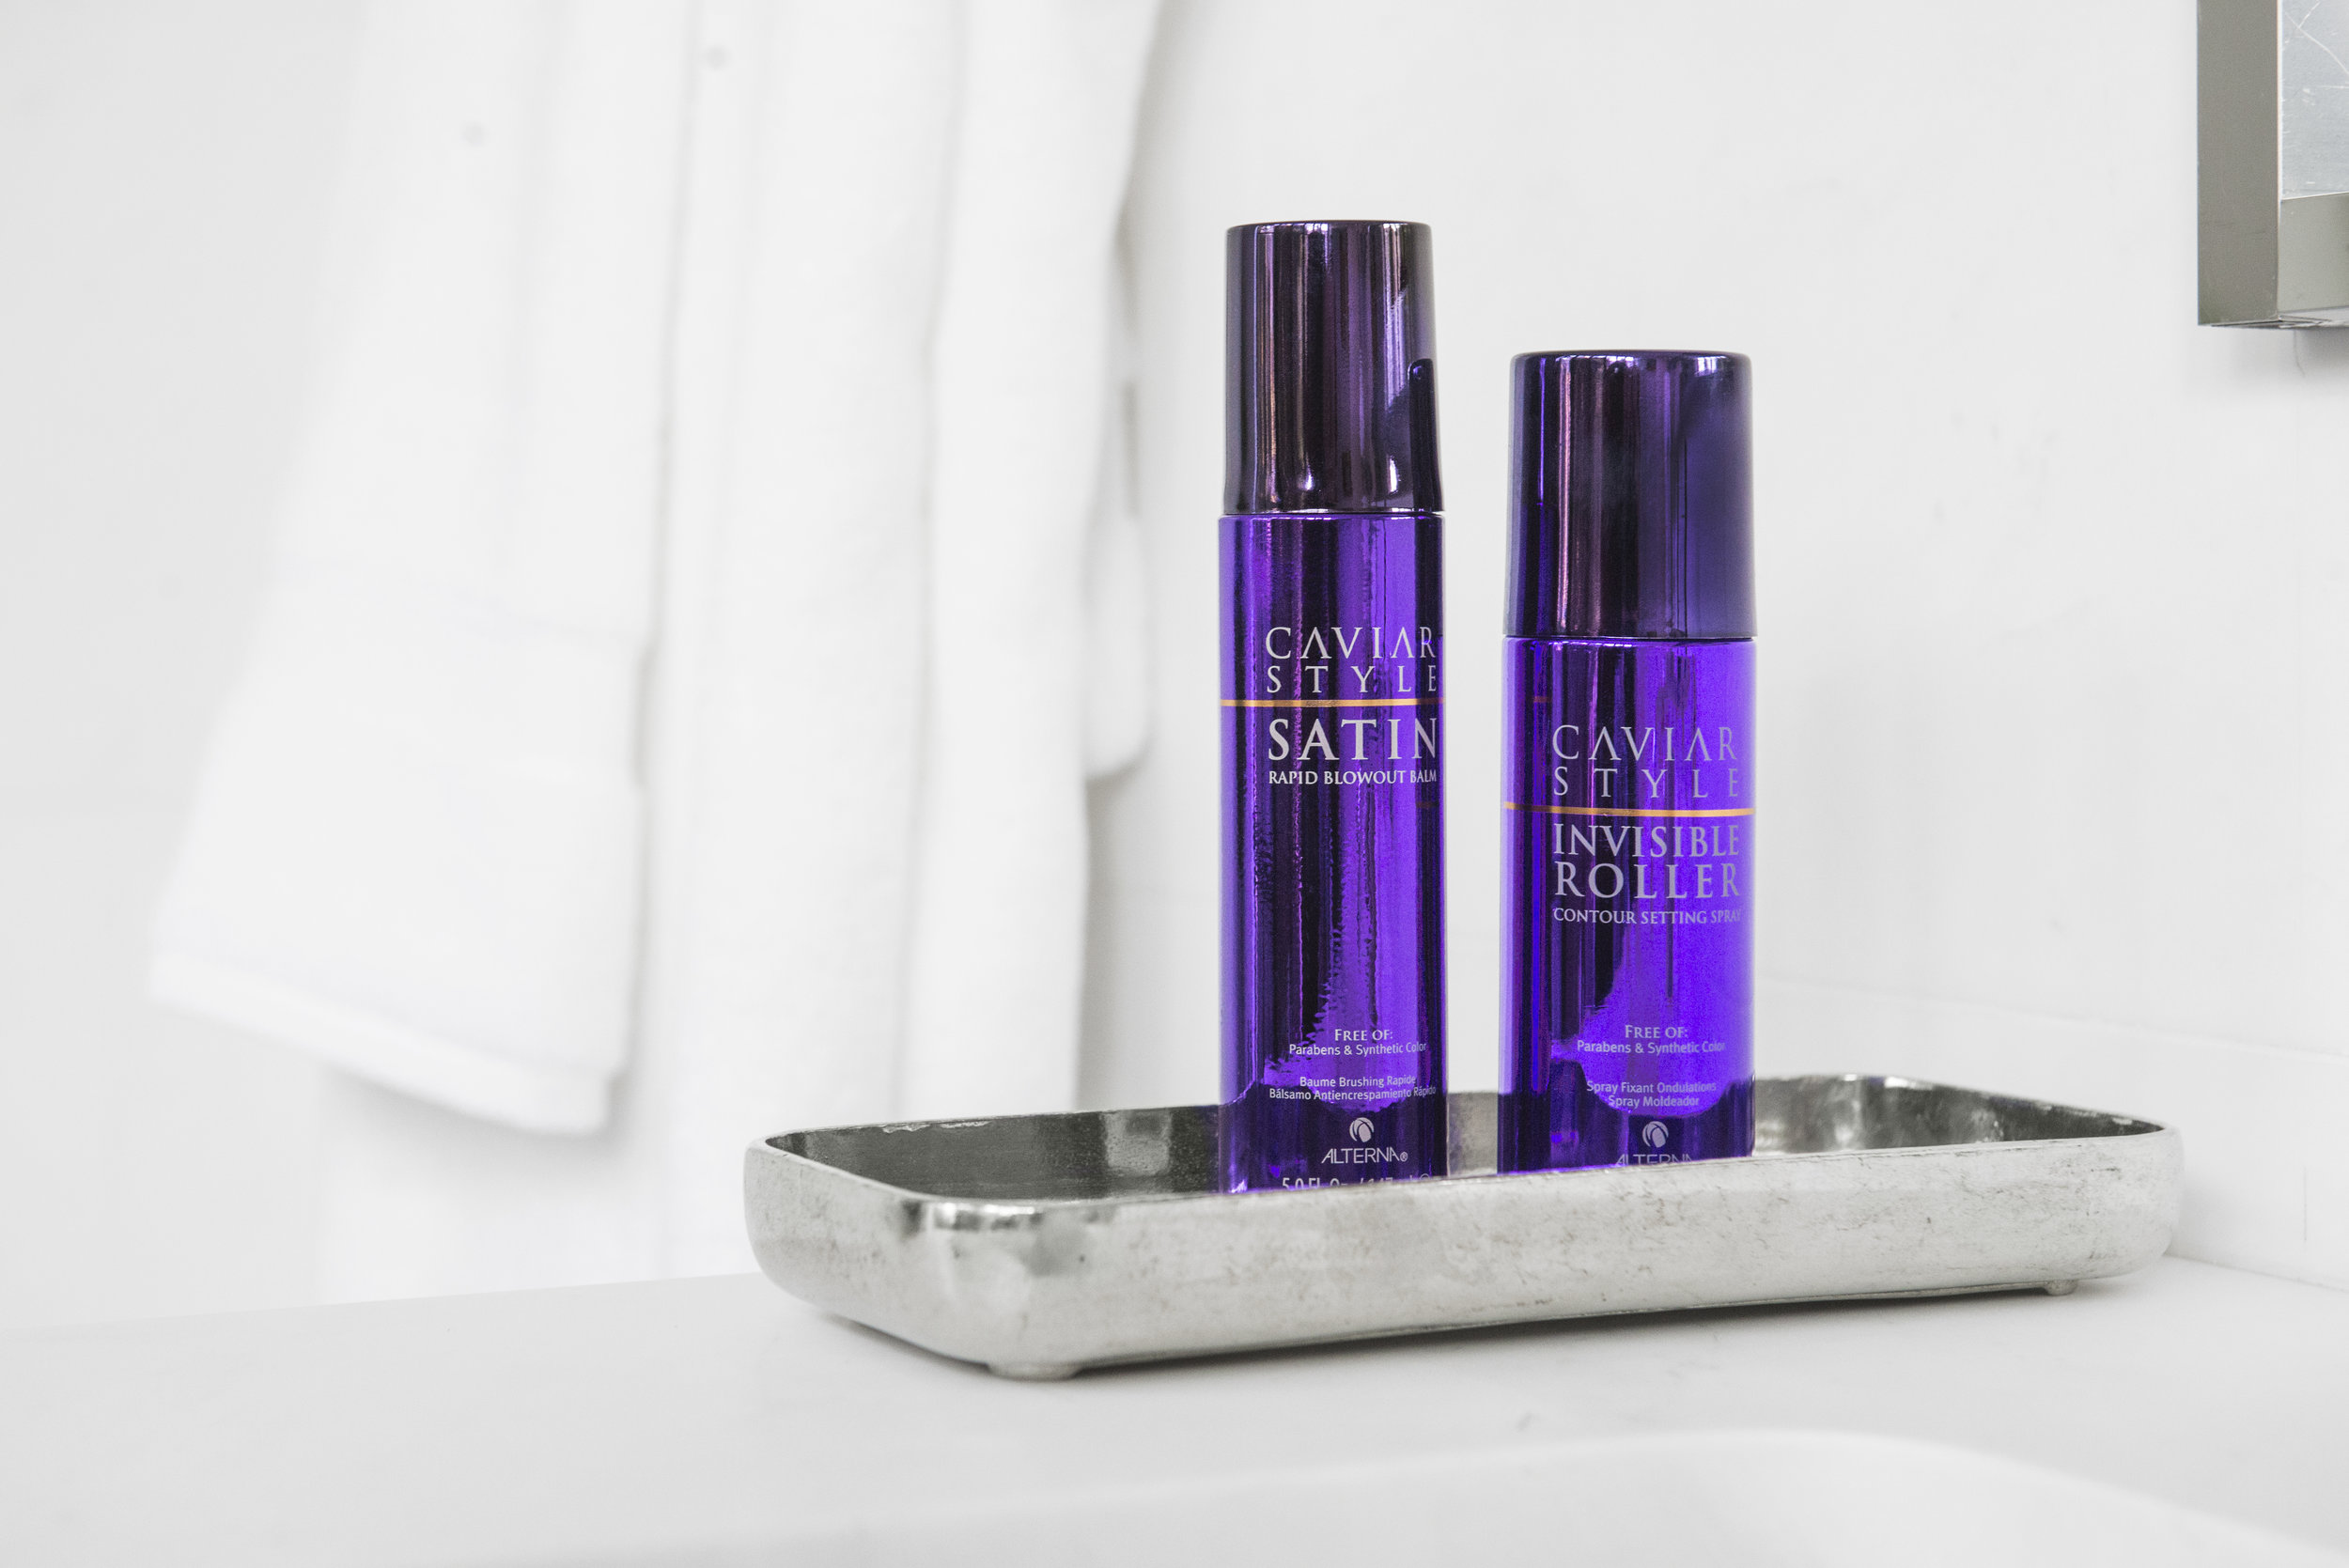 Alterna Haircare Caviar Style Satin and Caviar Style Invisible Roller - photo by Andrew Werner.jpg